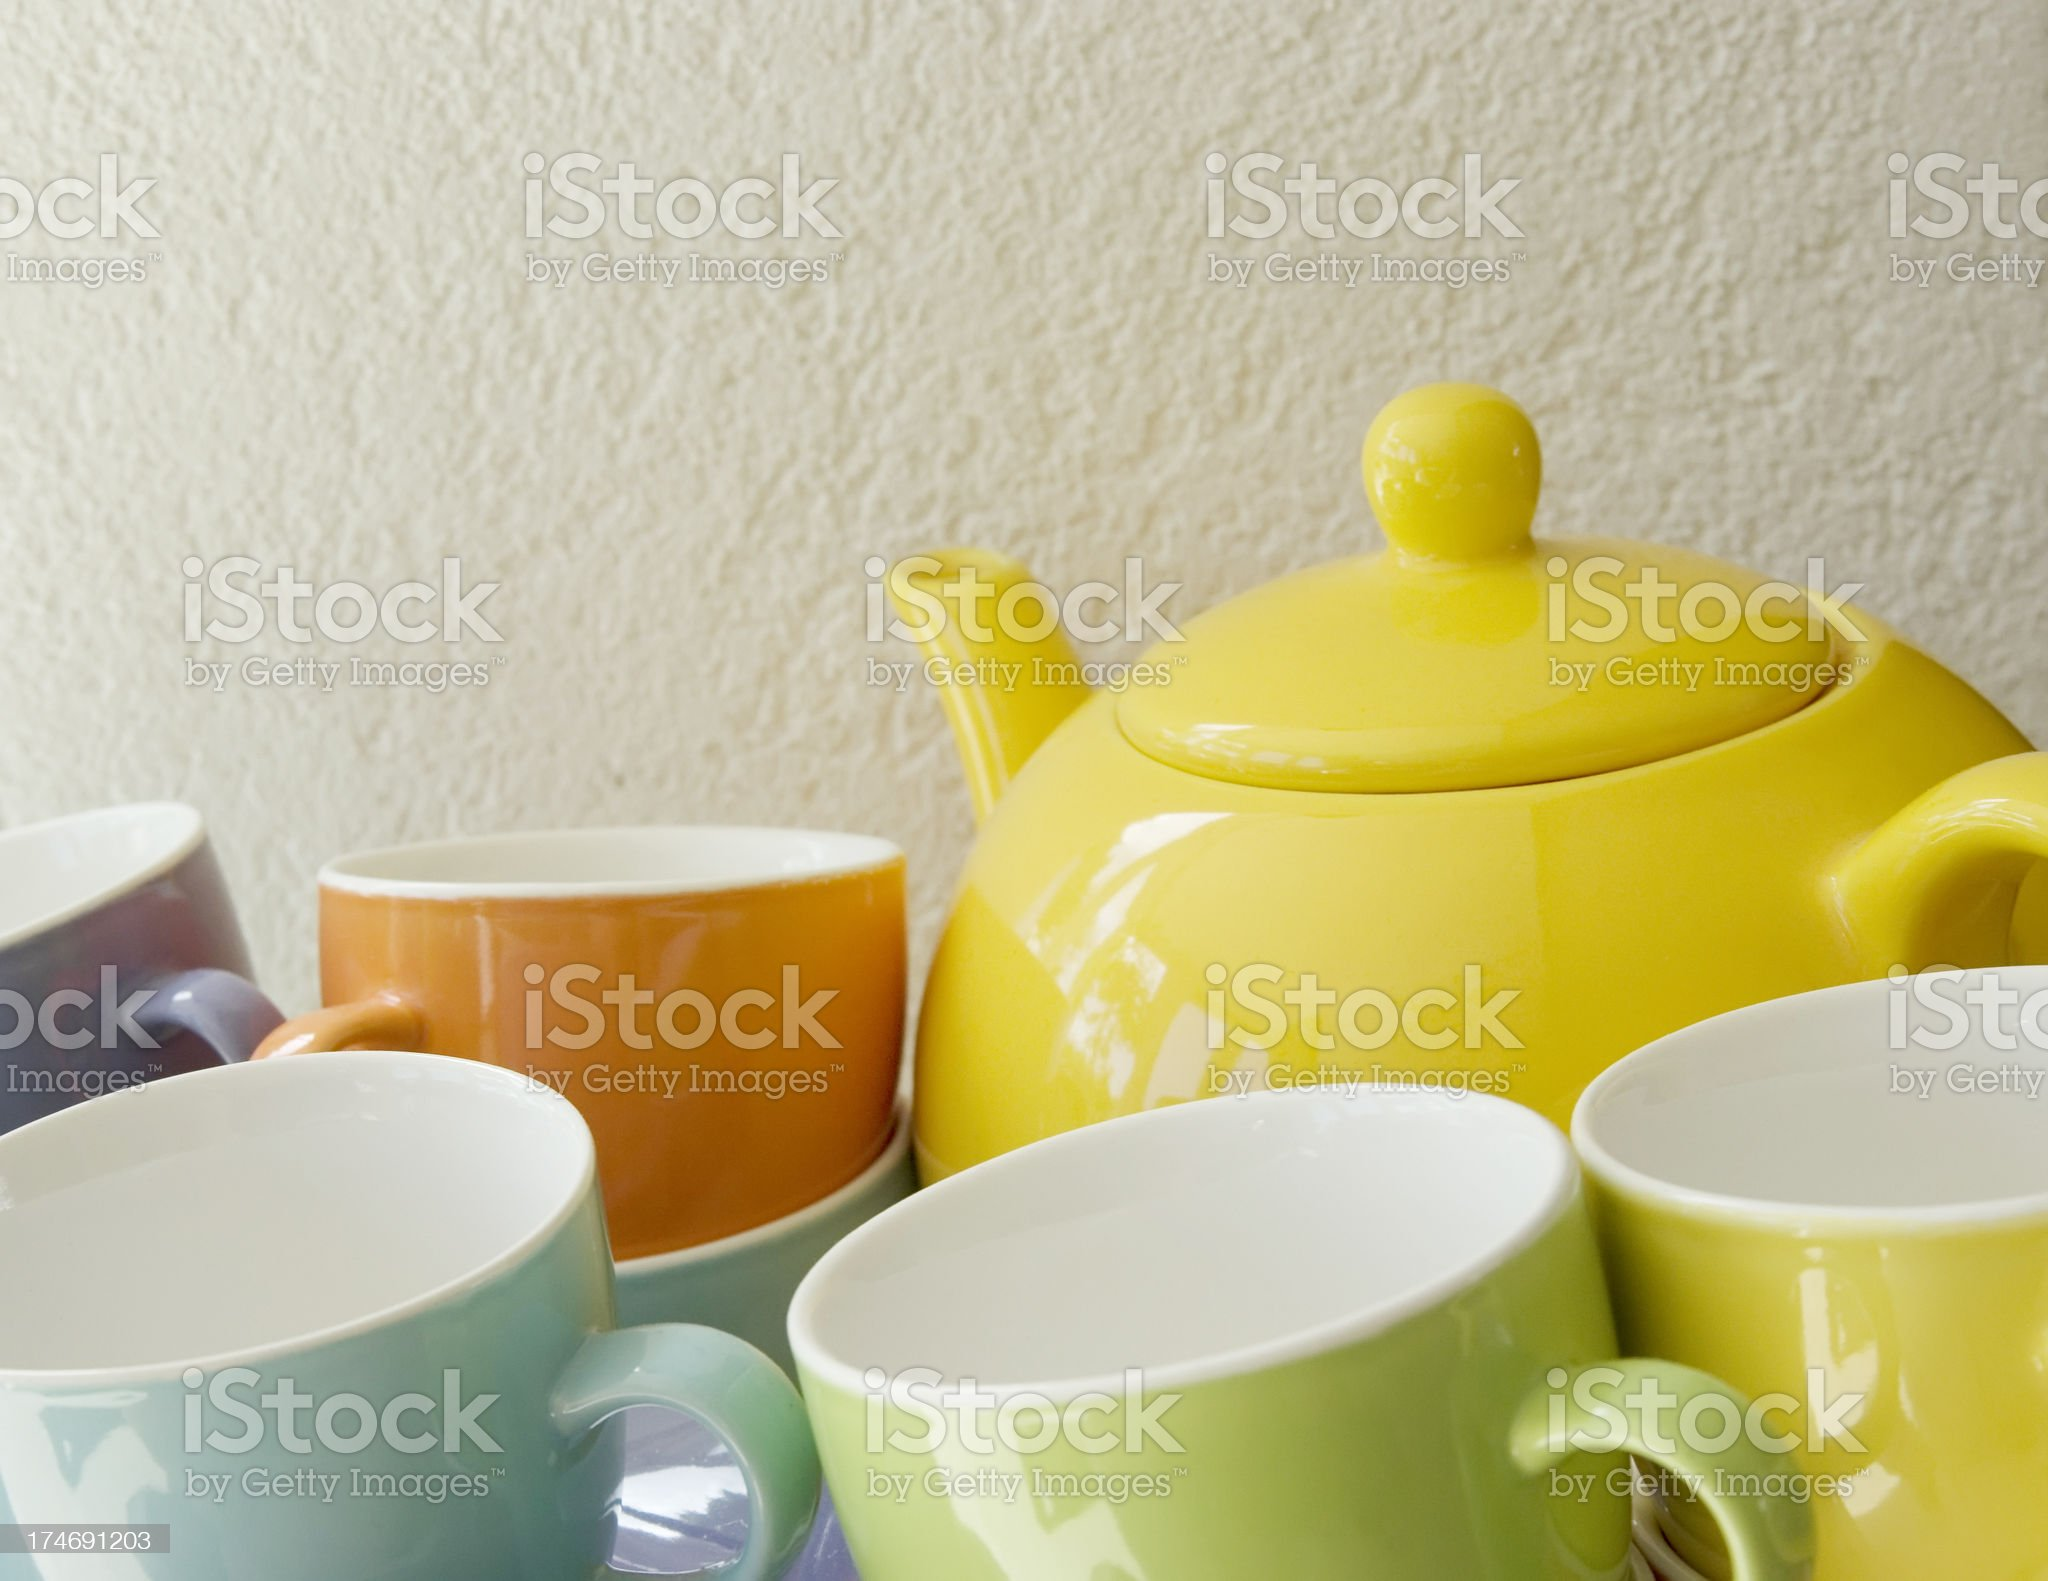 Colorful Tea Set royalty-free stock photo